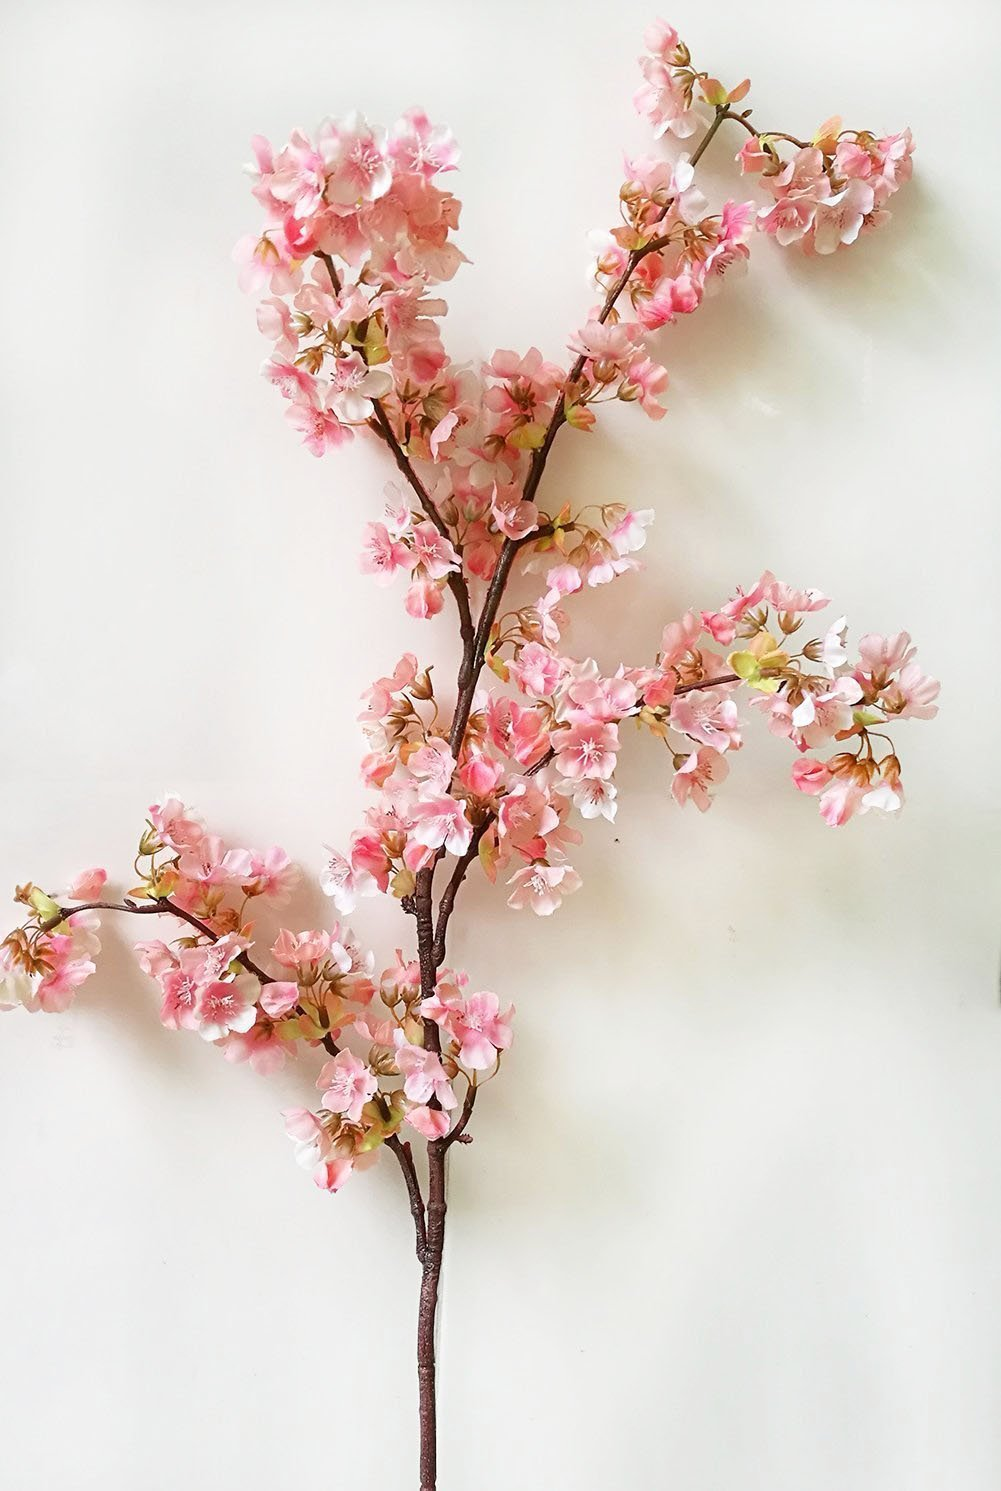 Artificial Cherry Blossom Branches Flowers Stems Silk Tall Flower Arrangements For Home Wedding Decoration